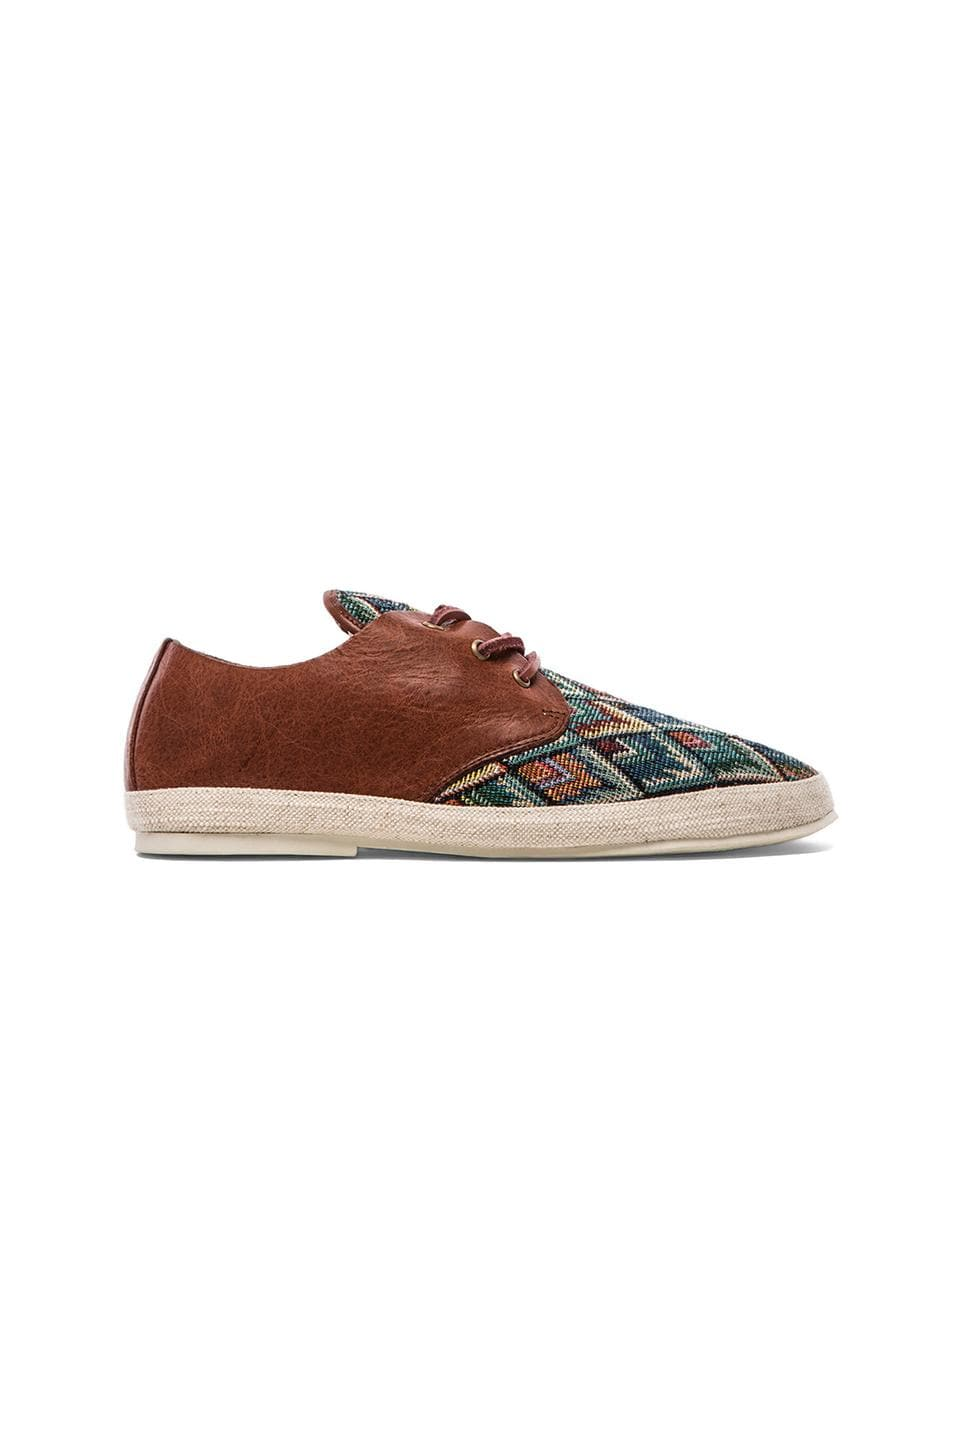 Scotch & Soda Straw Shoe w/ Leather in Blue & Multi